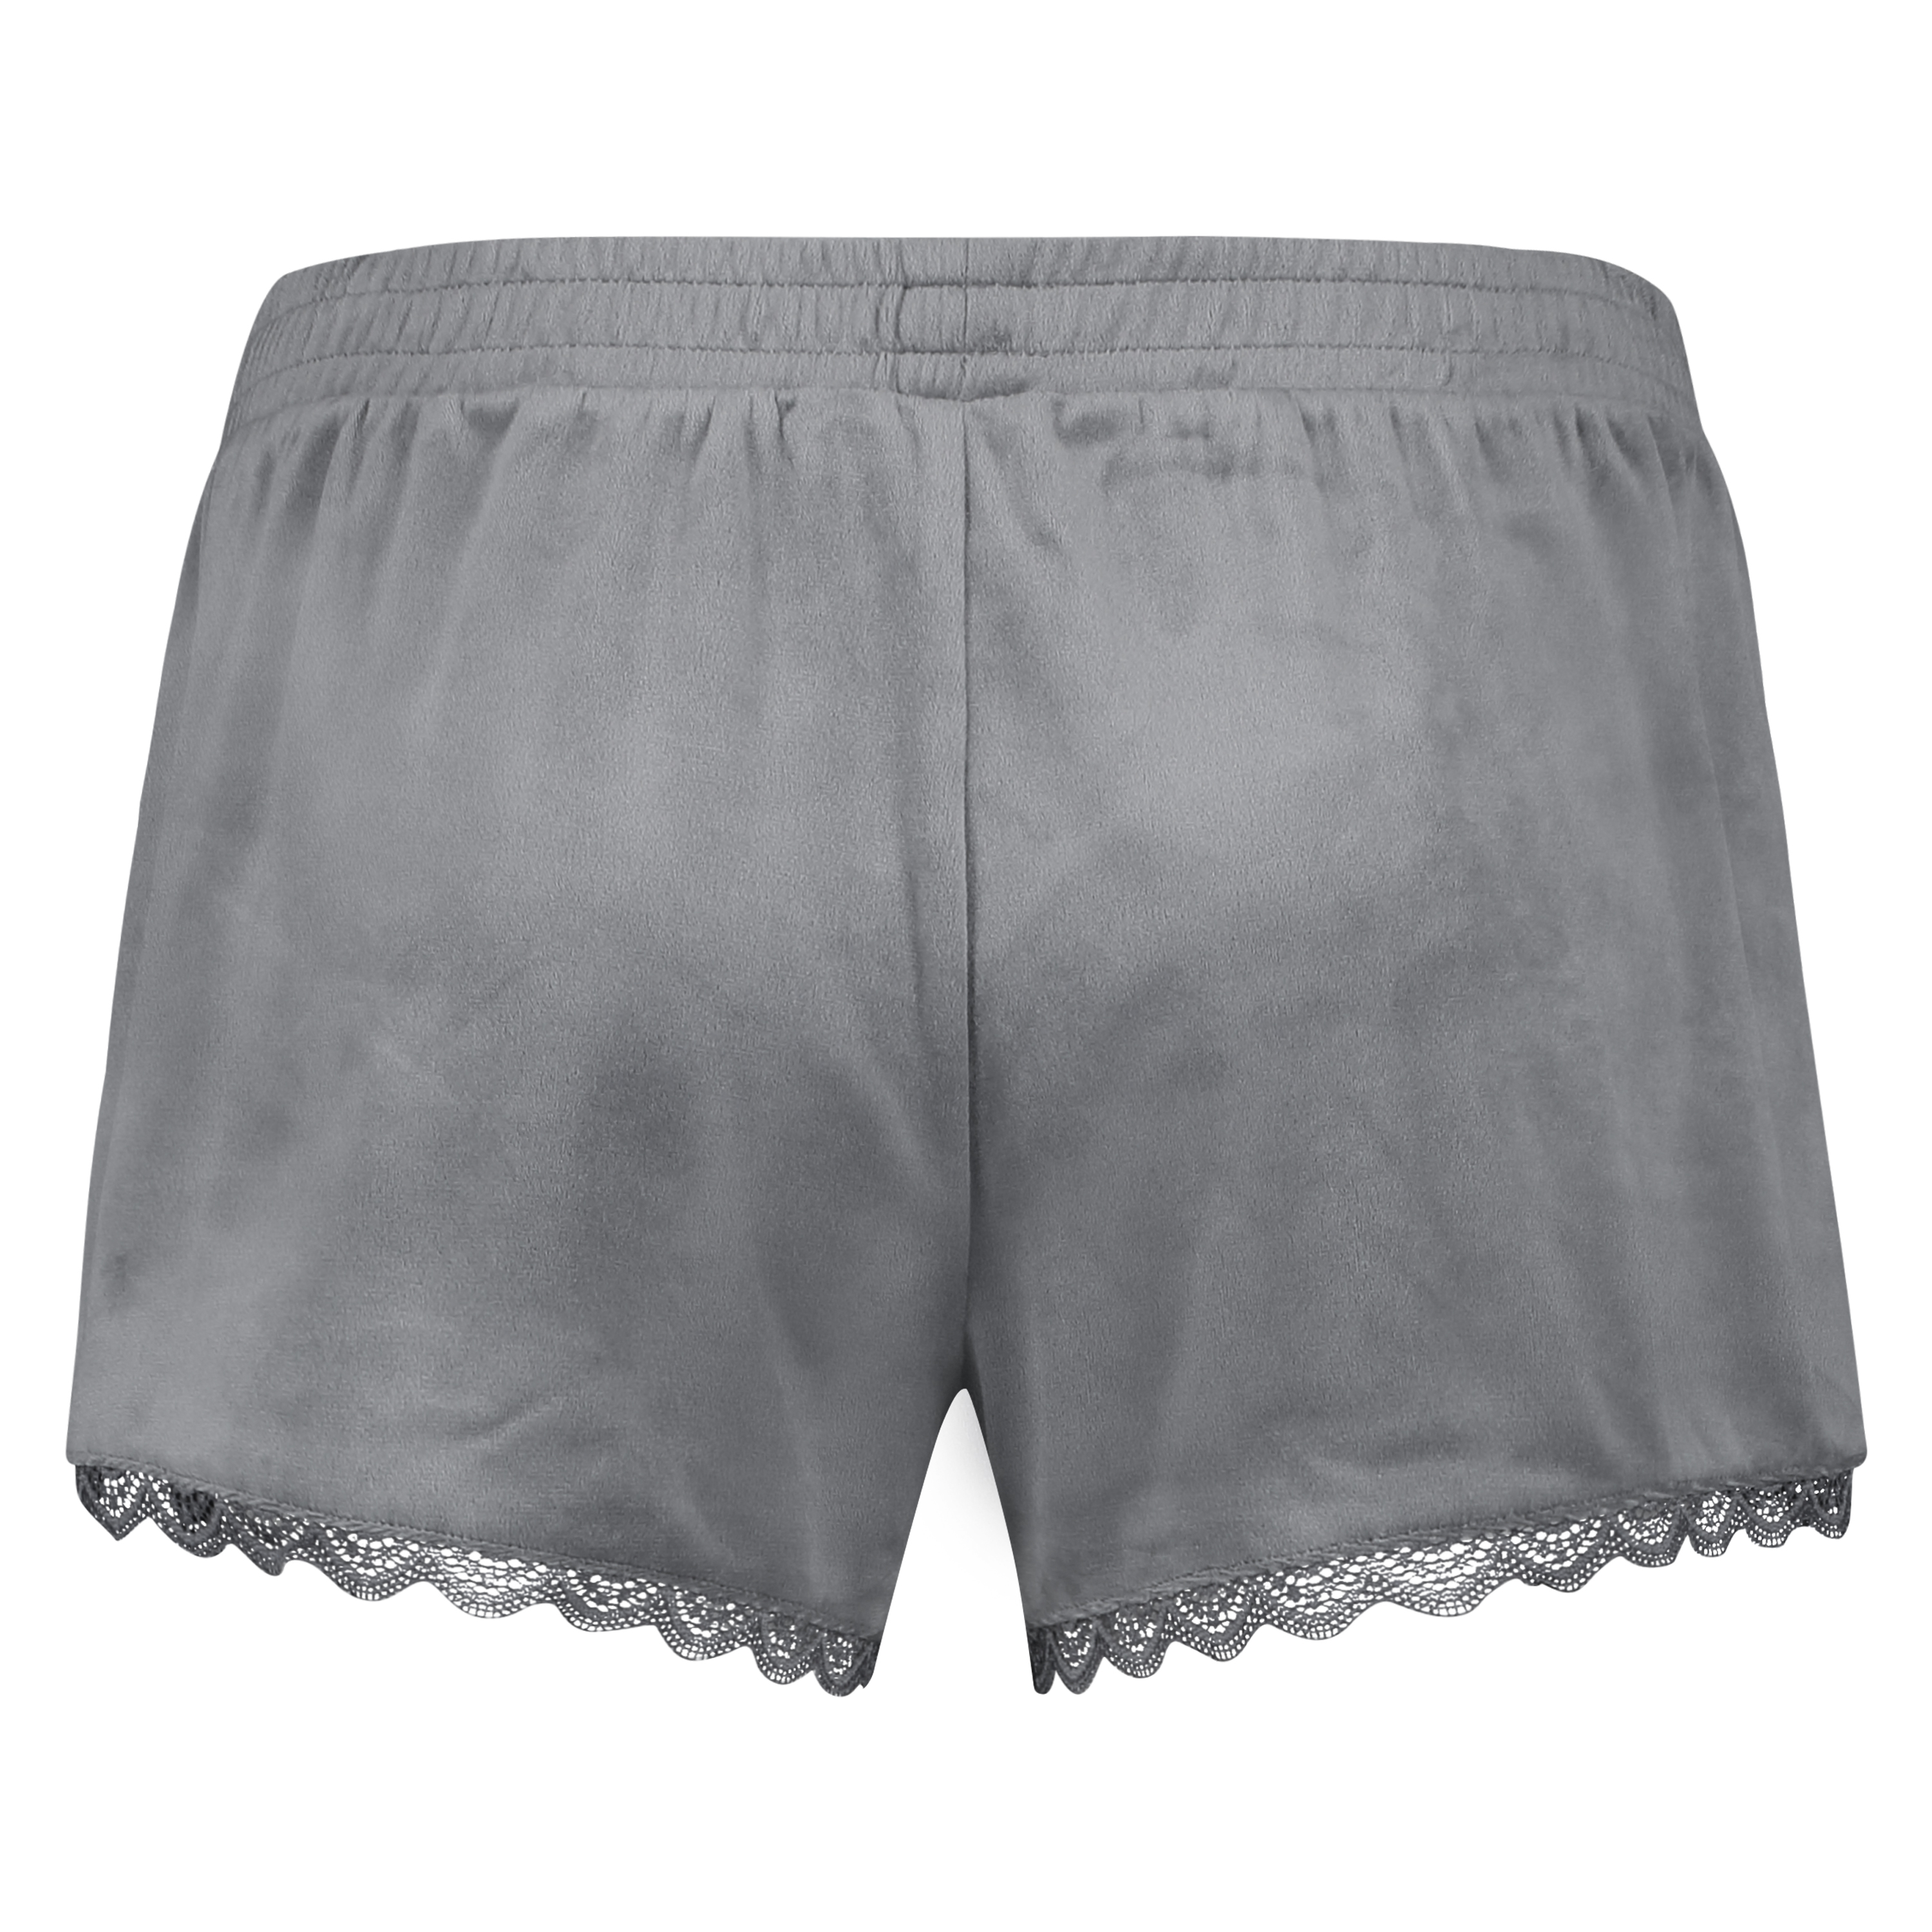 Pyjama short velours, Grijs, main